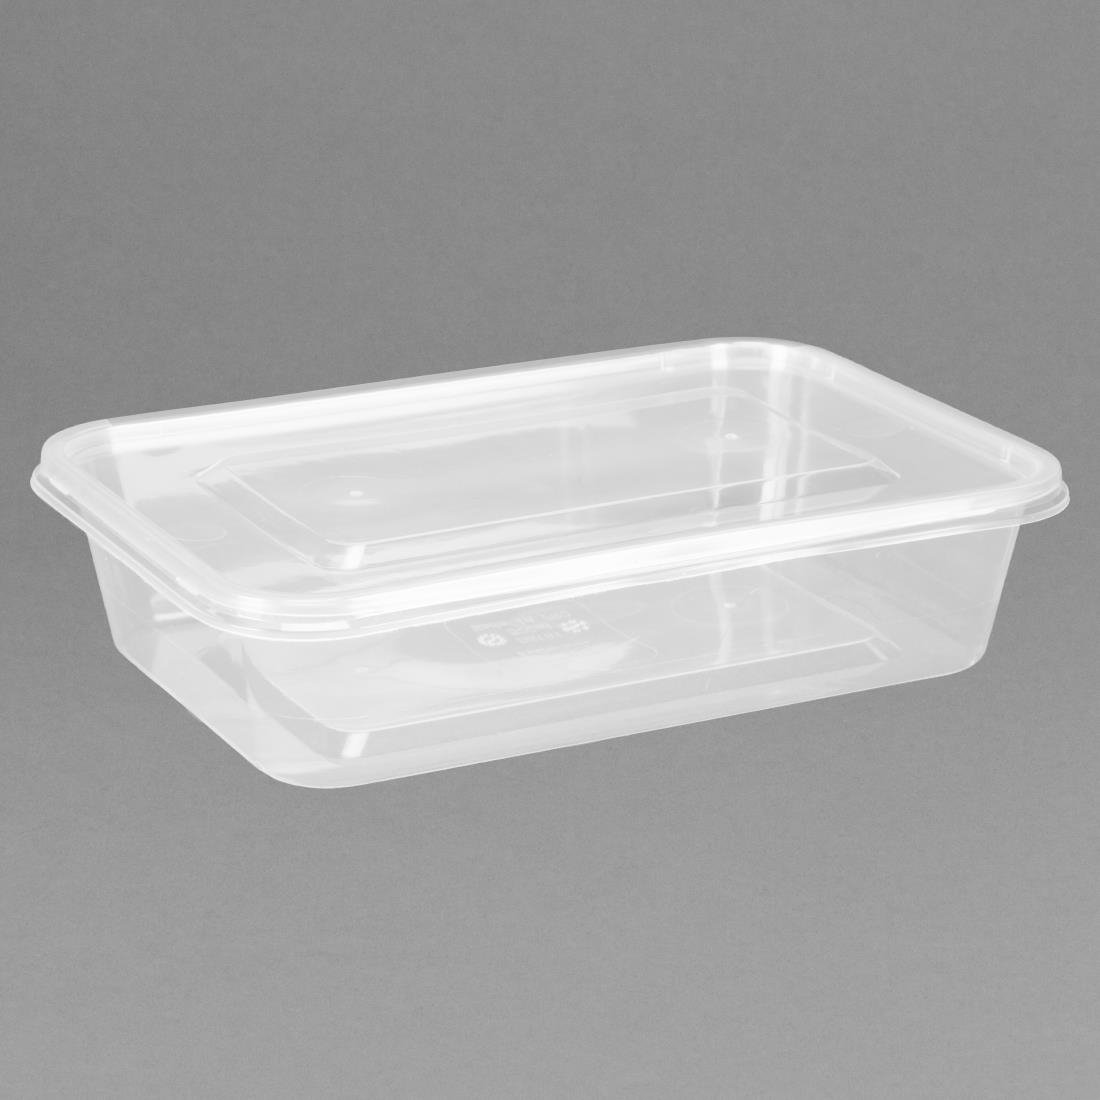 Image of Fiesta Plastic Microwavable Containers with Lid Small 500ml (Pack of 250) Pack of 250